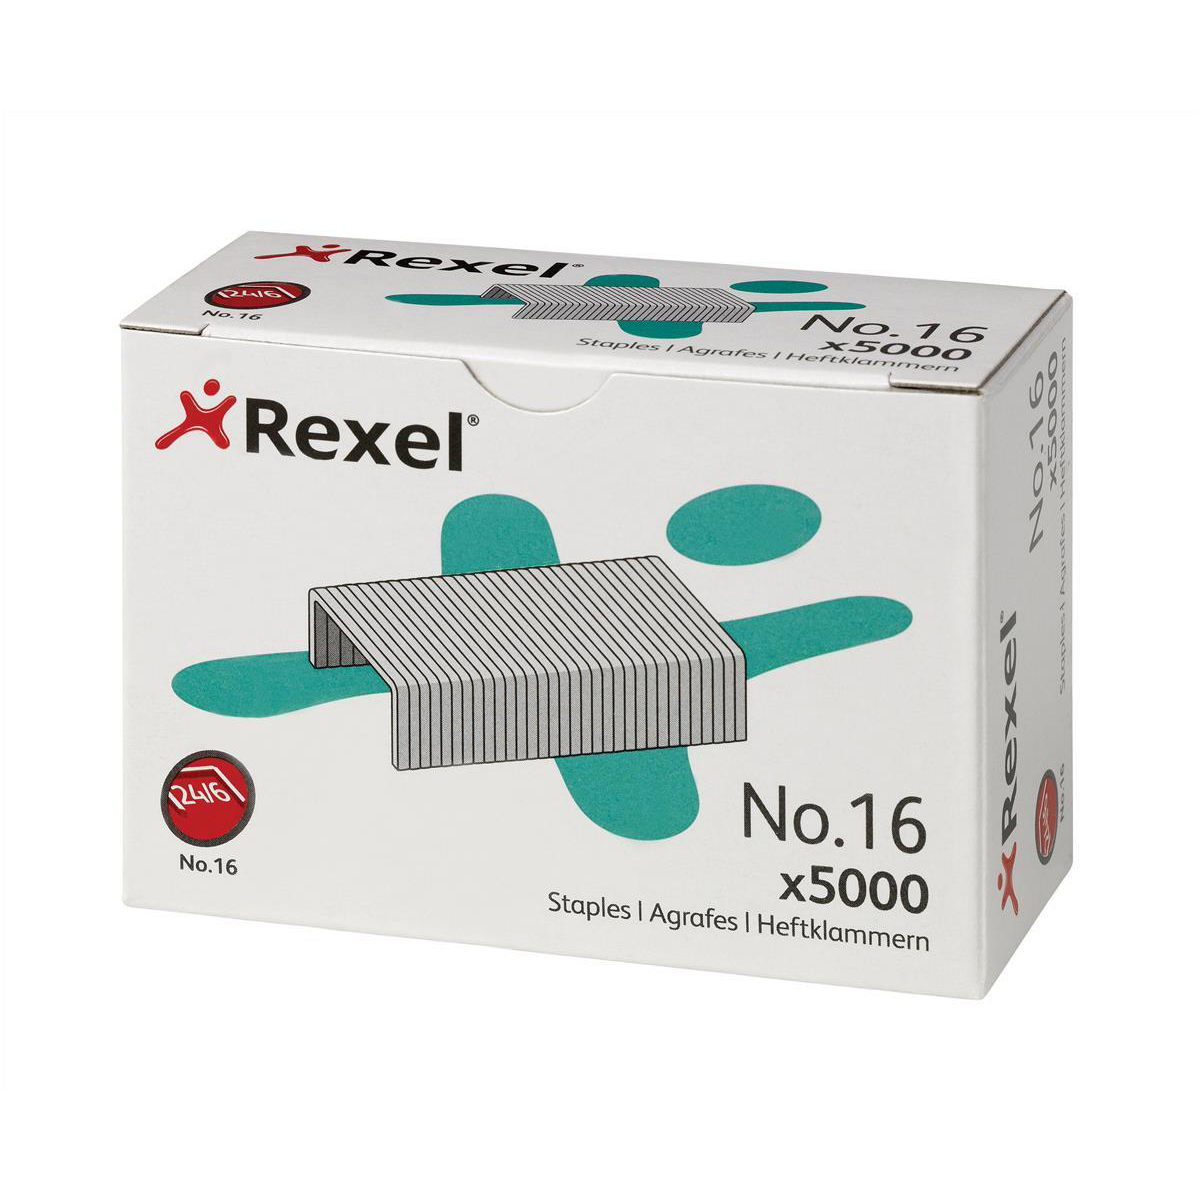 Rexel 16 Staples 6mm Ref 06010 Pack 5000